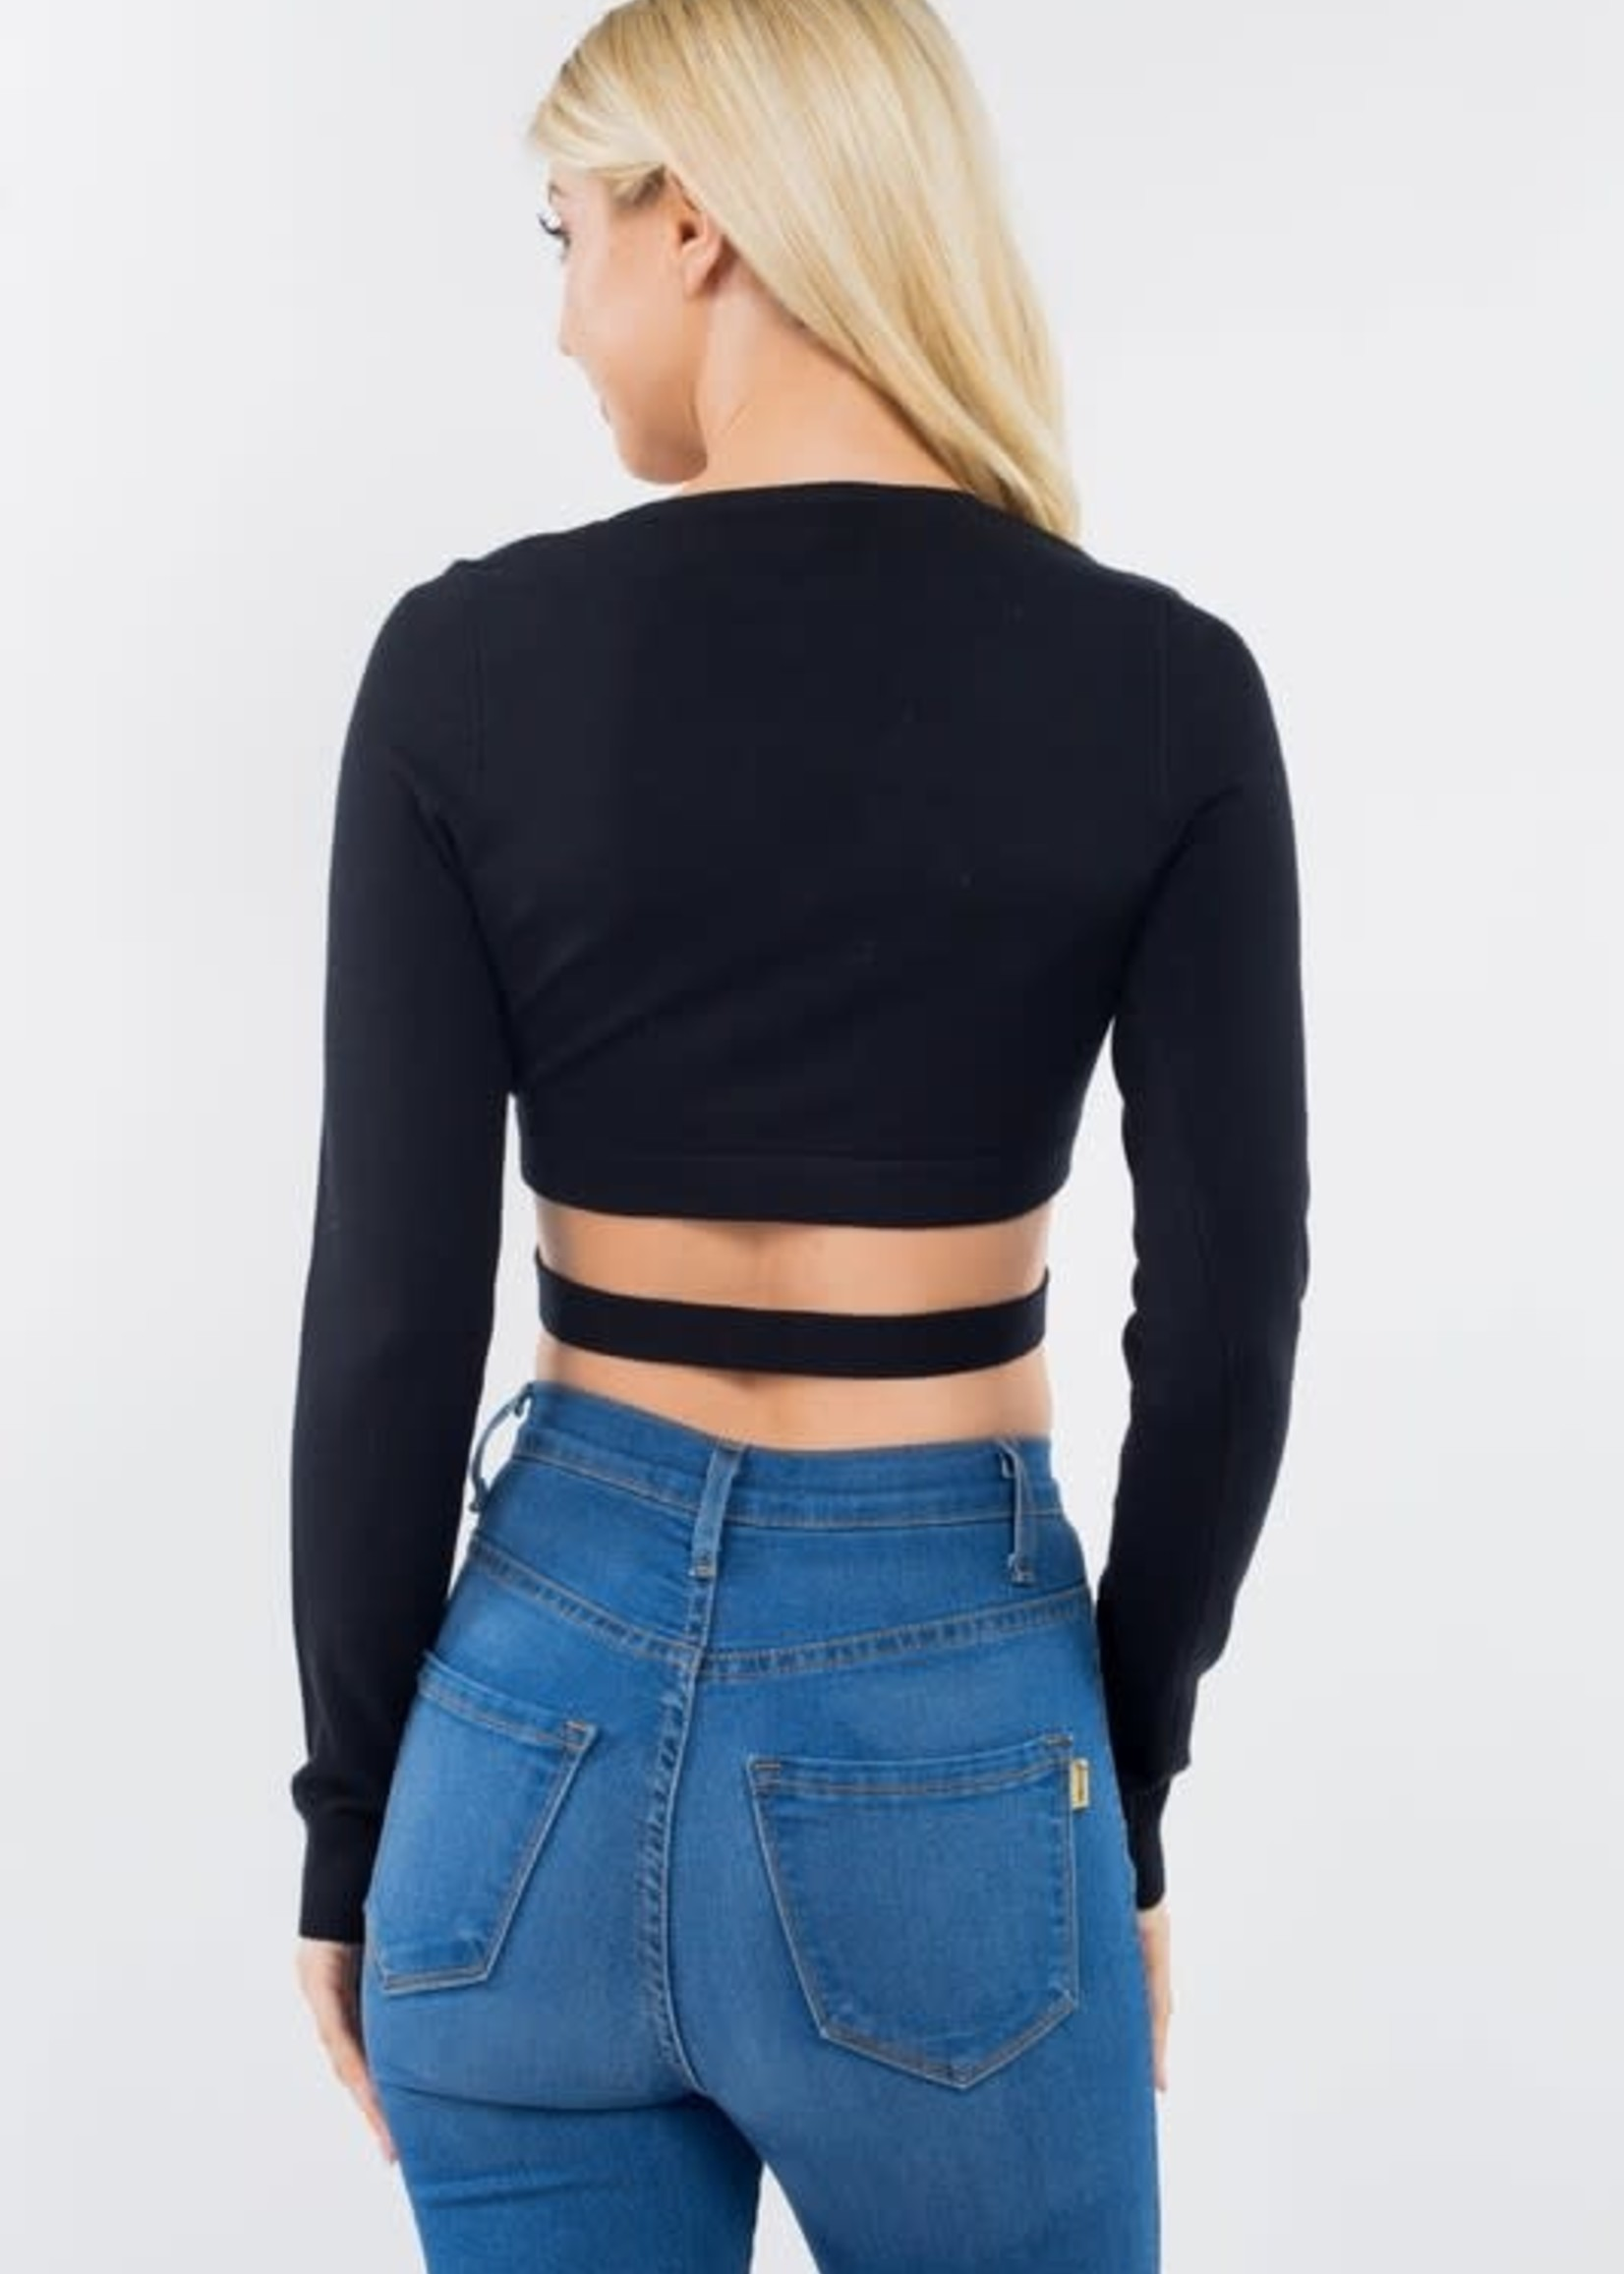 Wrap It Up Sweater (5 Colors)